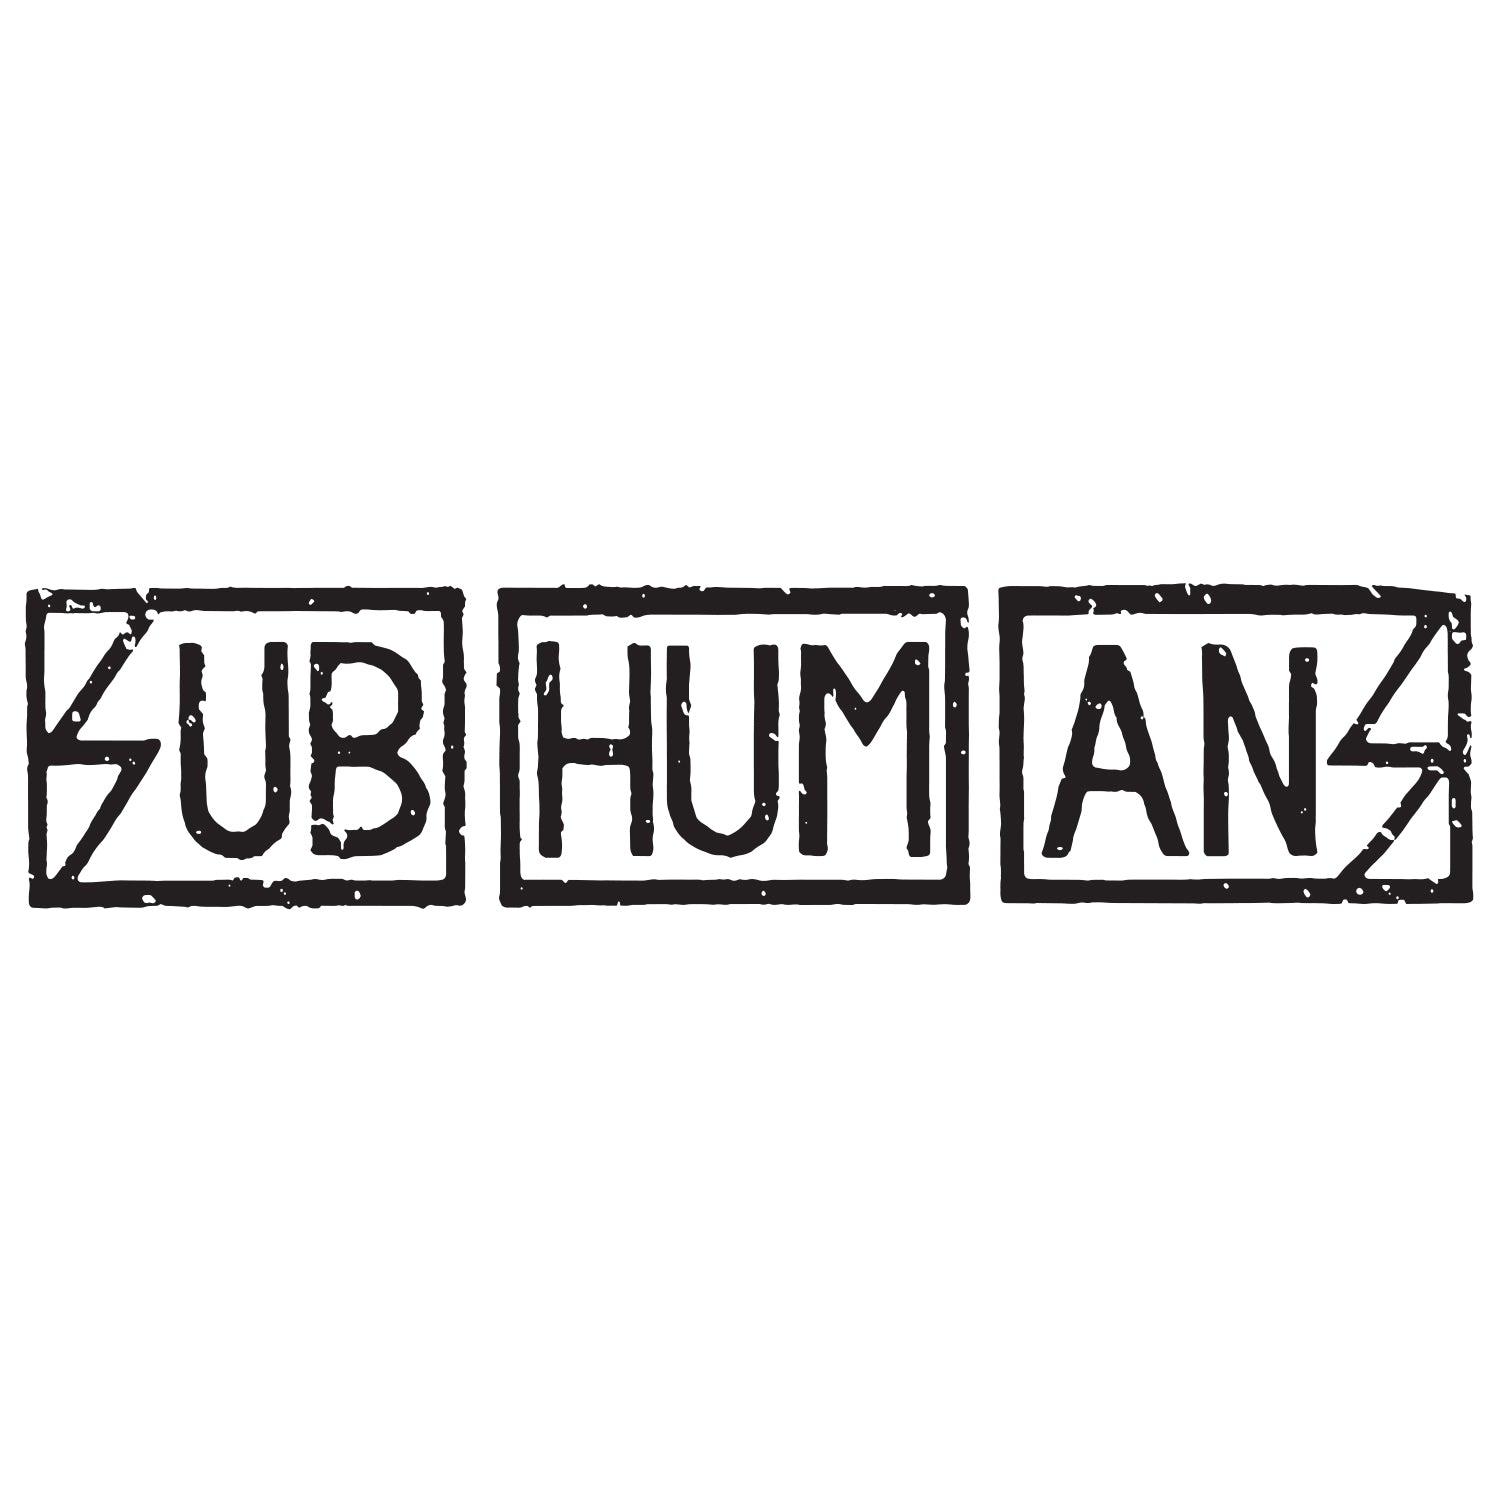 Subhumans - Text Logo - Vinyl Sticker